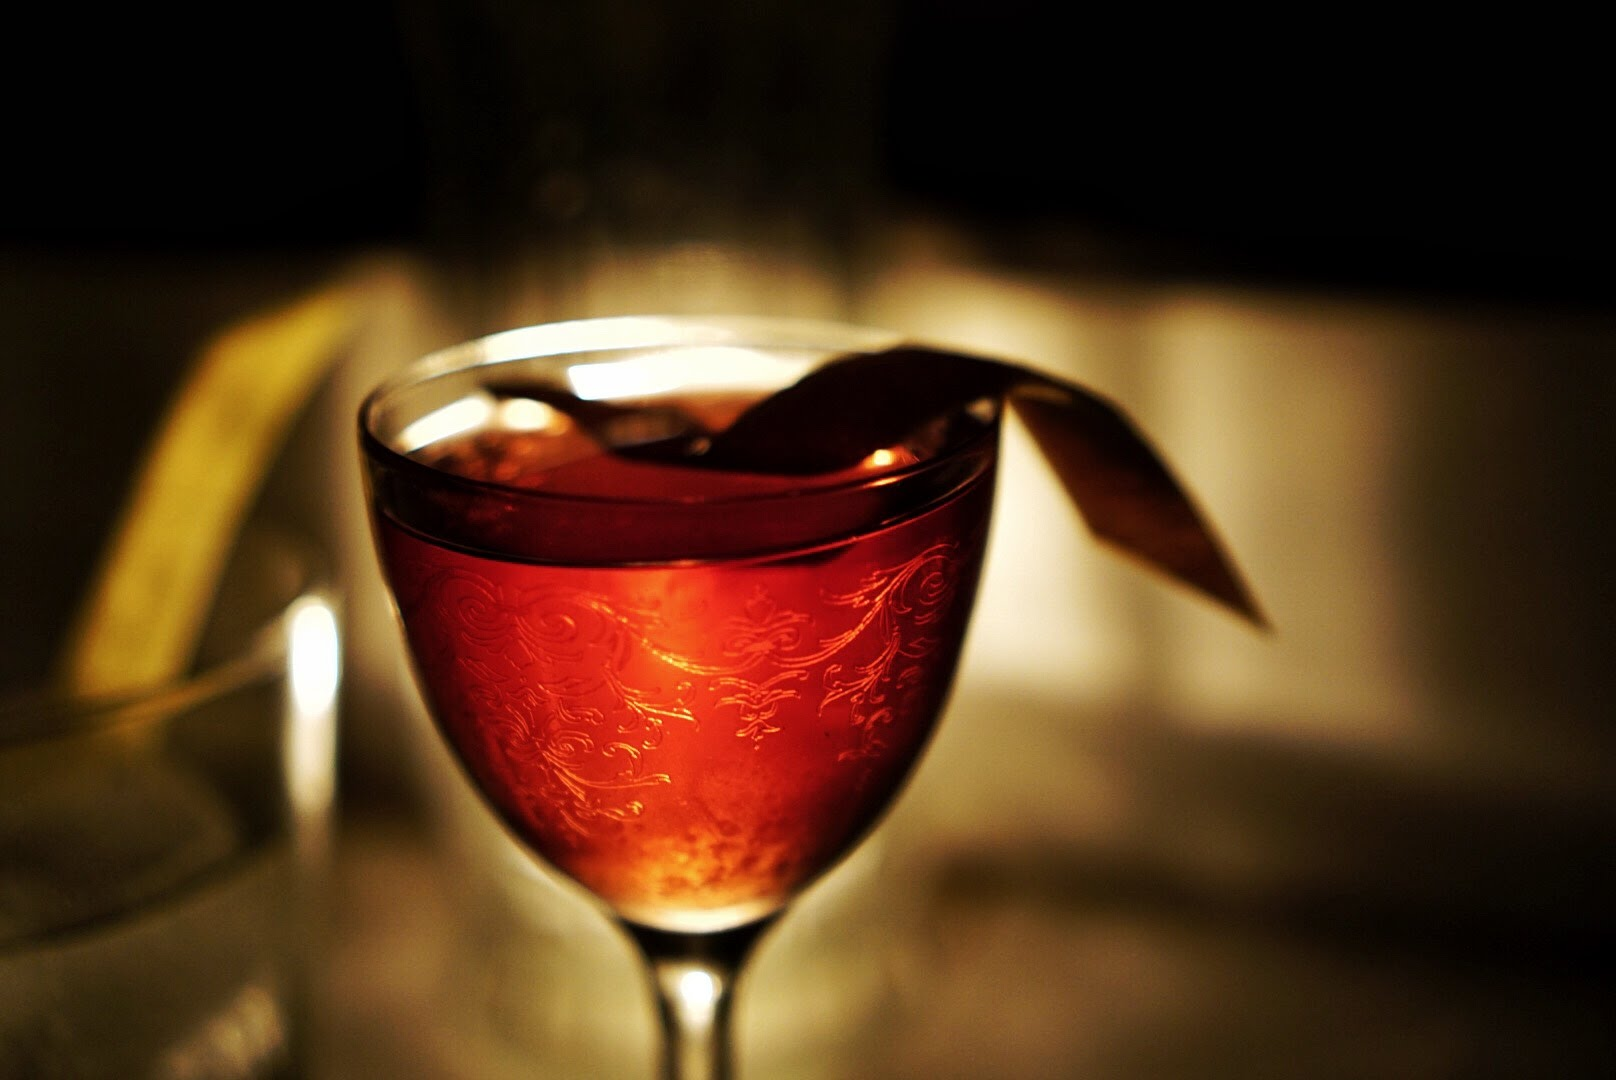 optional level-up: - Vintage 1920s cocktails to match the era of the heritage carriages $